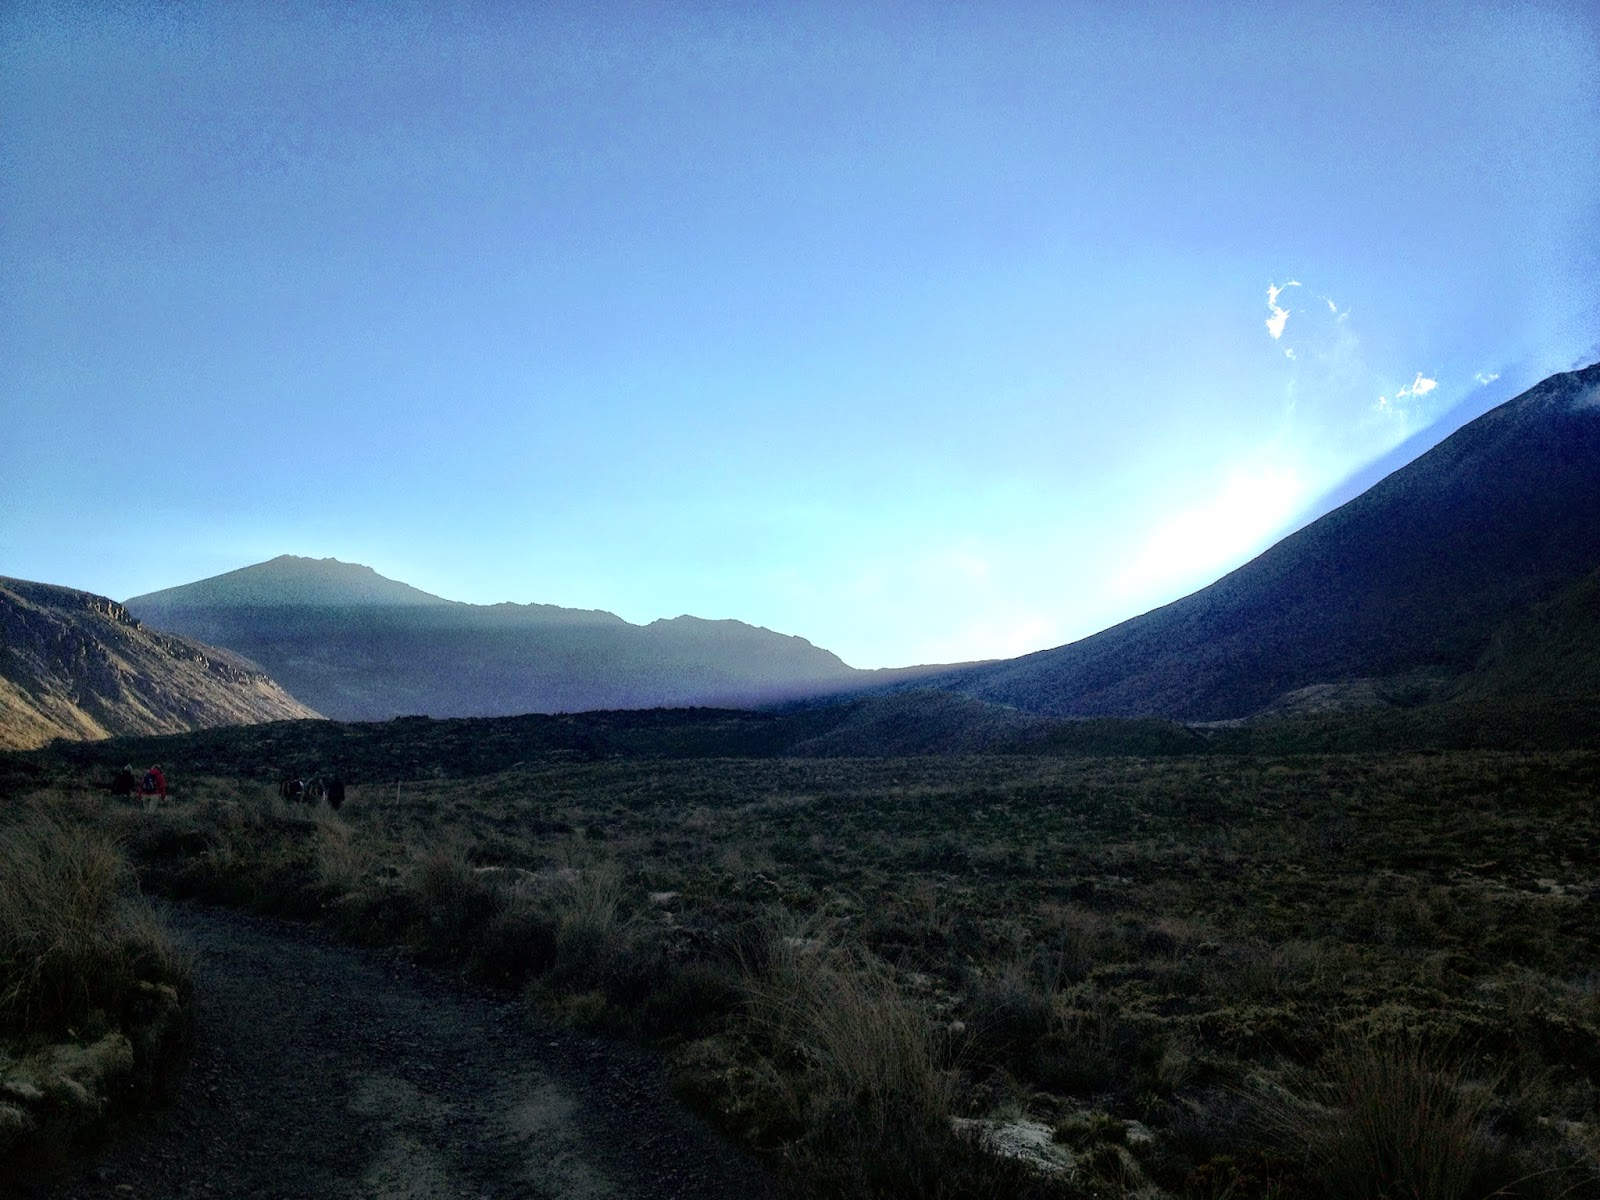 Sunrise over the Tongariro Alpine Crossing, New Zealand